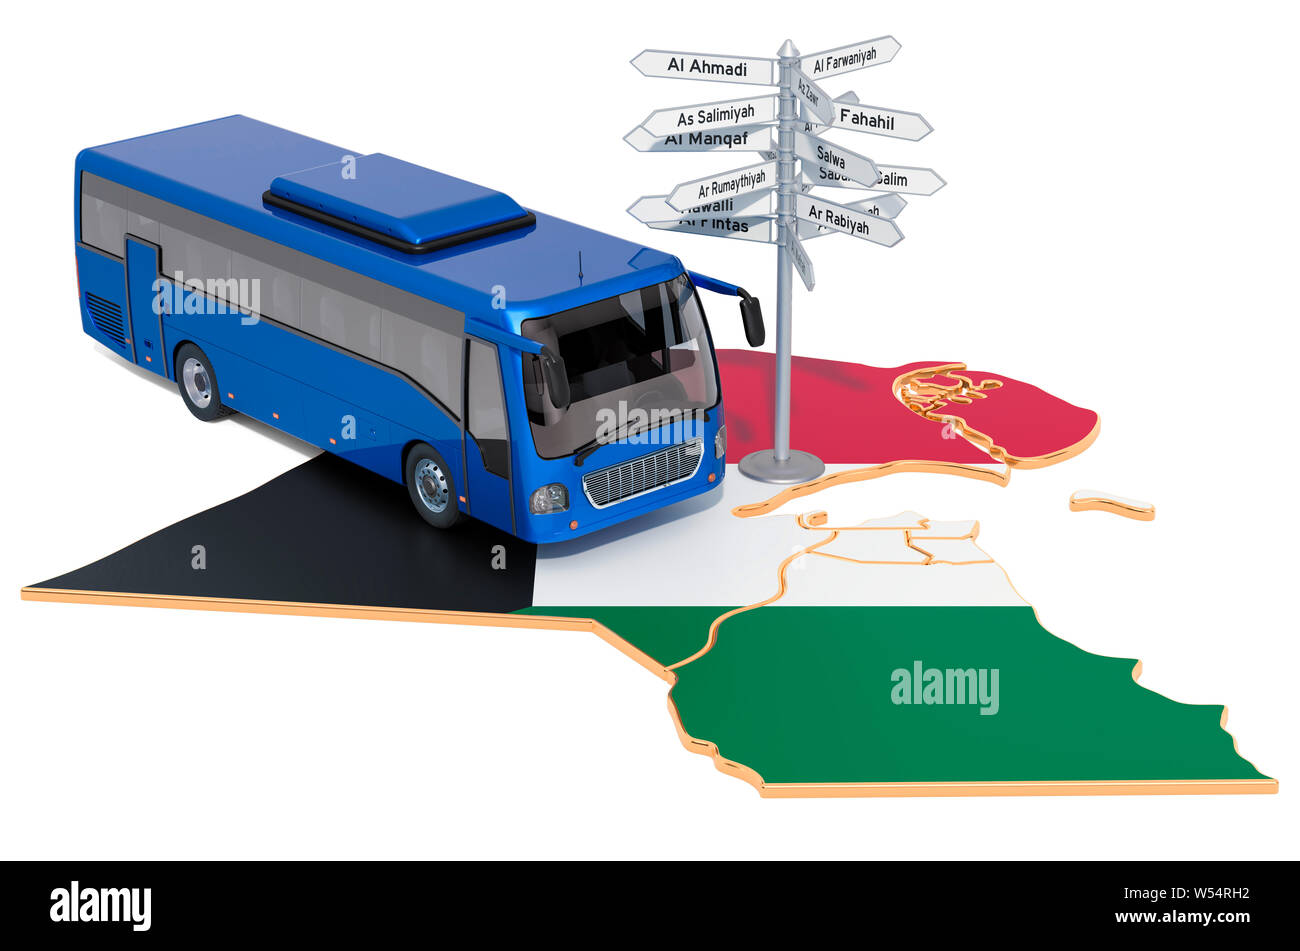 Kuwait Bus Tours concept. 3D rendering isolated on white background Stock Photo